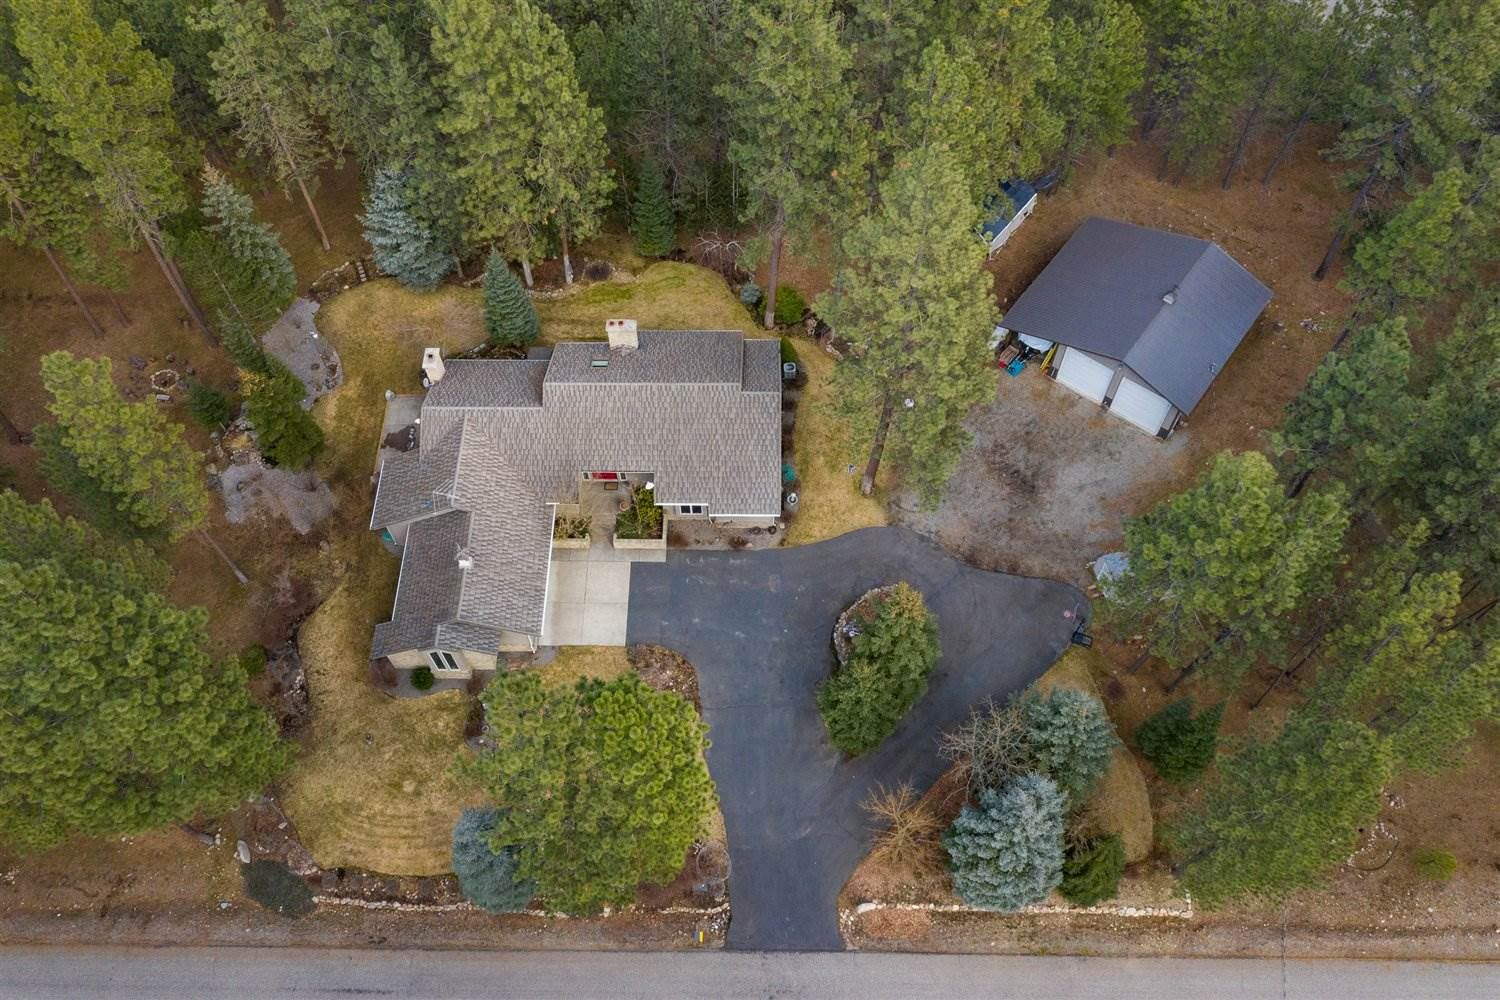 22106 N North Glen Ct, Colbert, WA 99005-9413 - #: 202112550